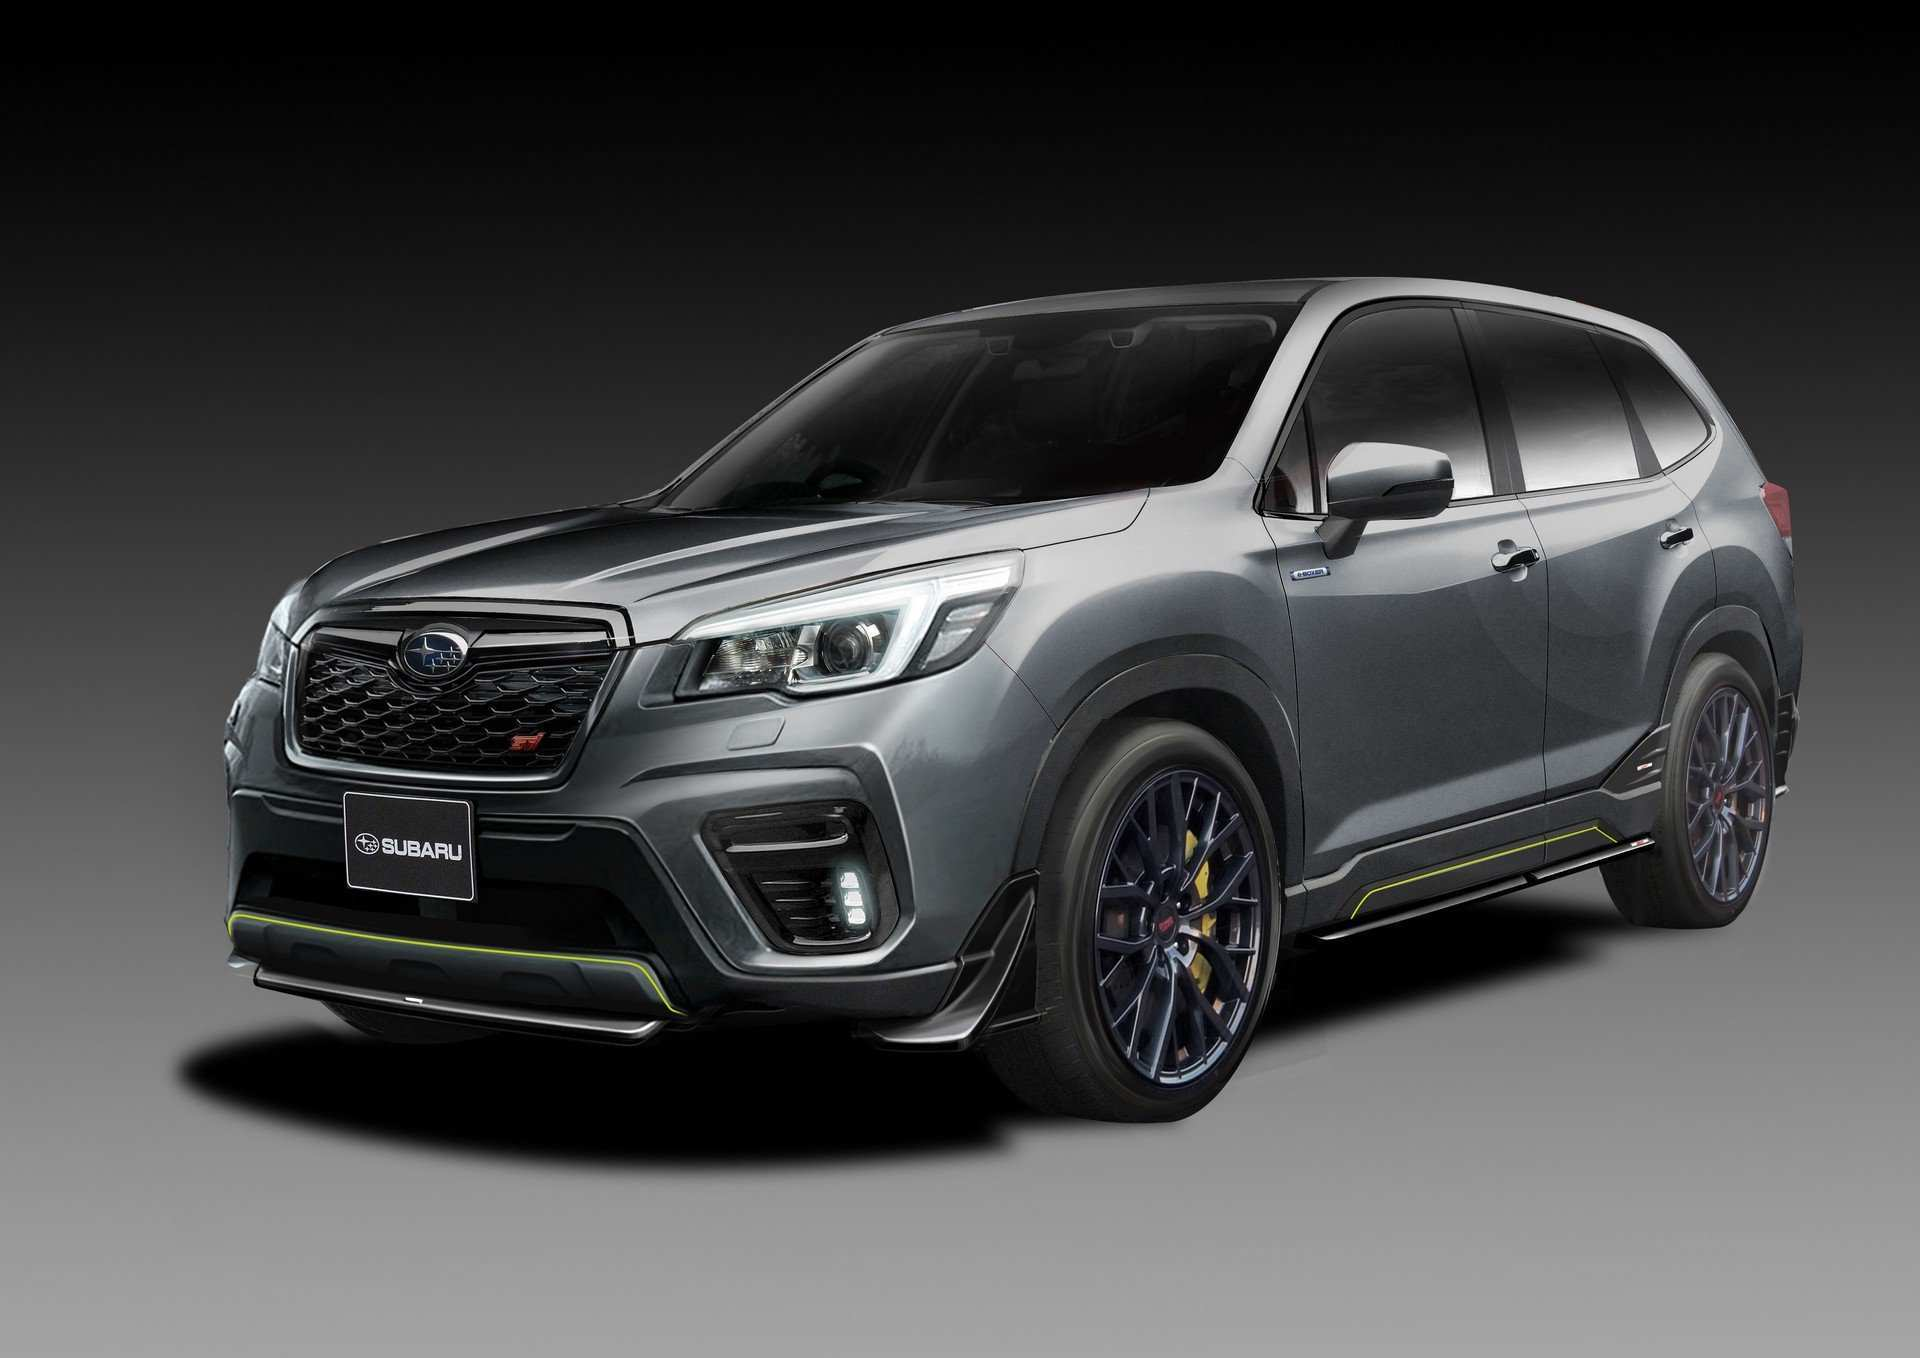 47 The Best Subaru Forester 2019 News Wallpaper